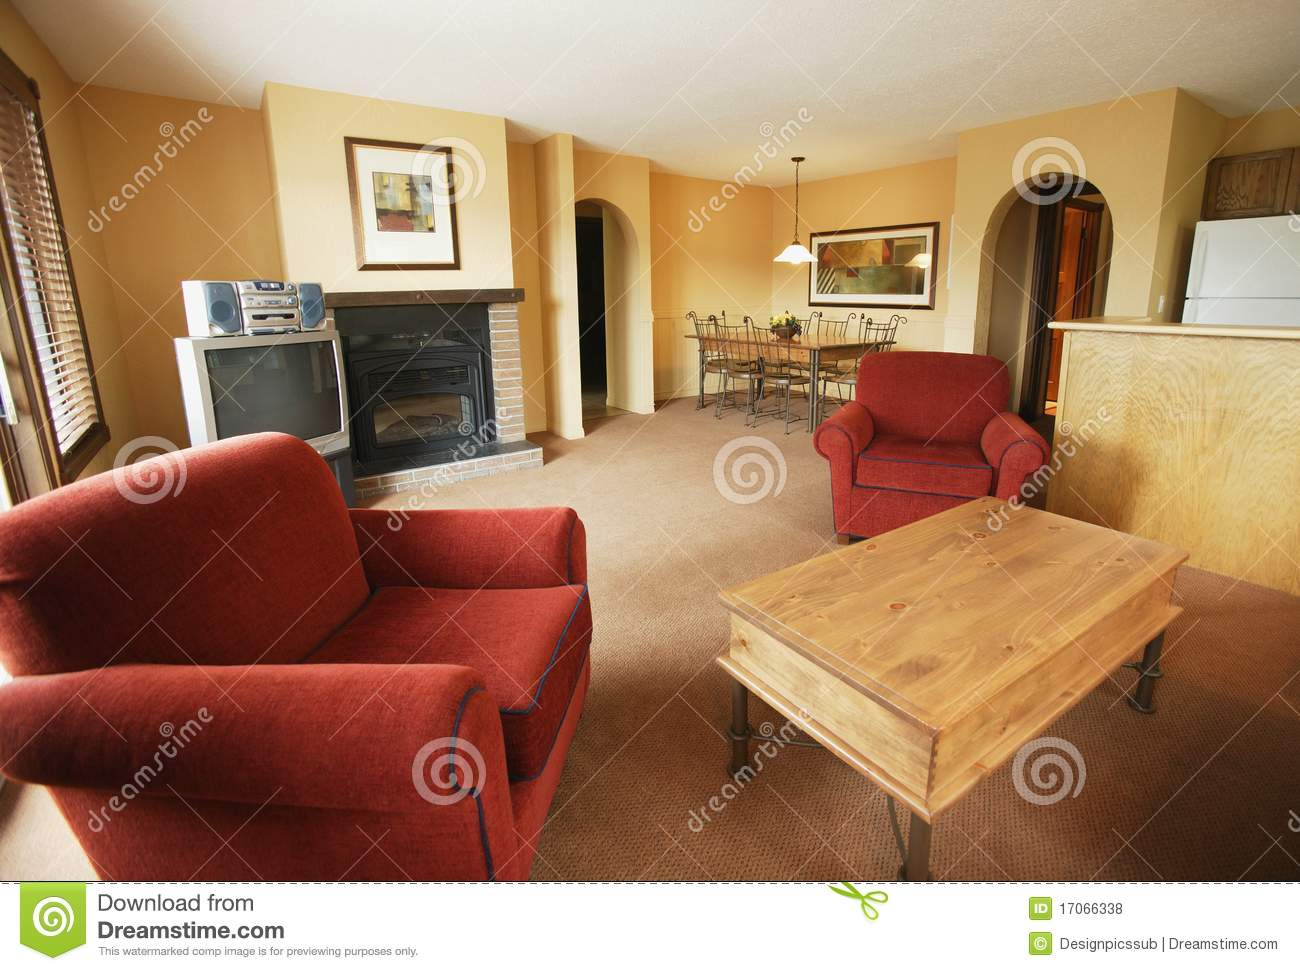 HD wallpapers living room yoga coogee hedlovewall.gq